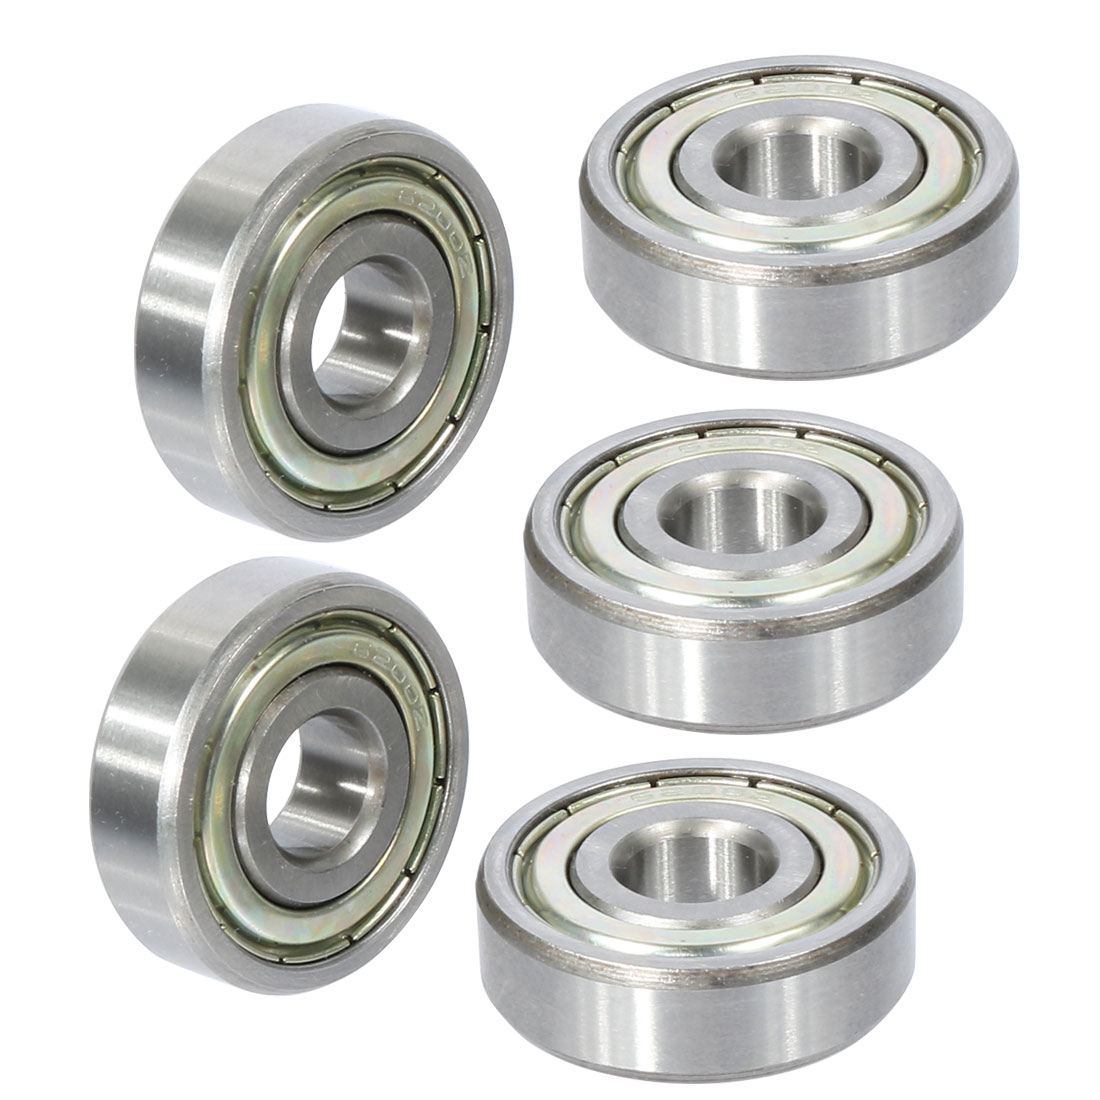 6200z Iron Non-noise Low Speeding Deep Groove Bearing Ball 10 x 30 x 9mm 5pcs